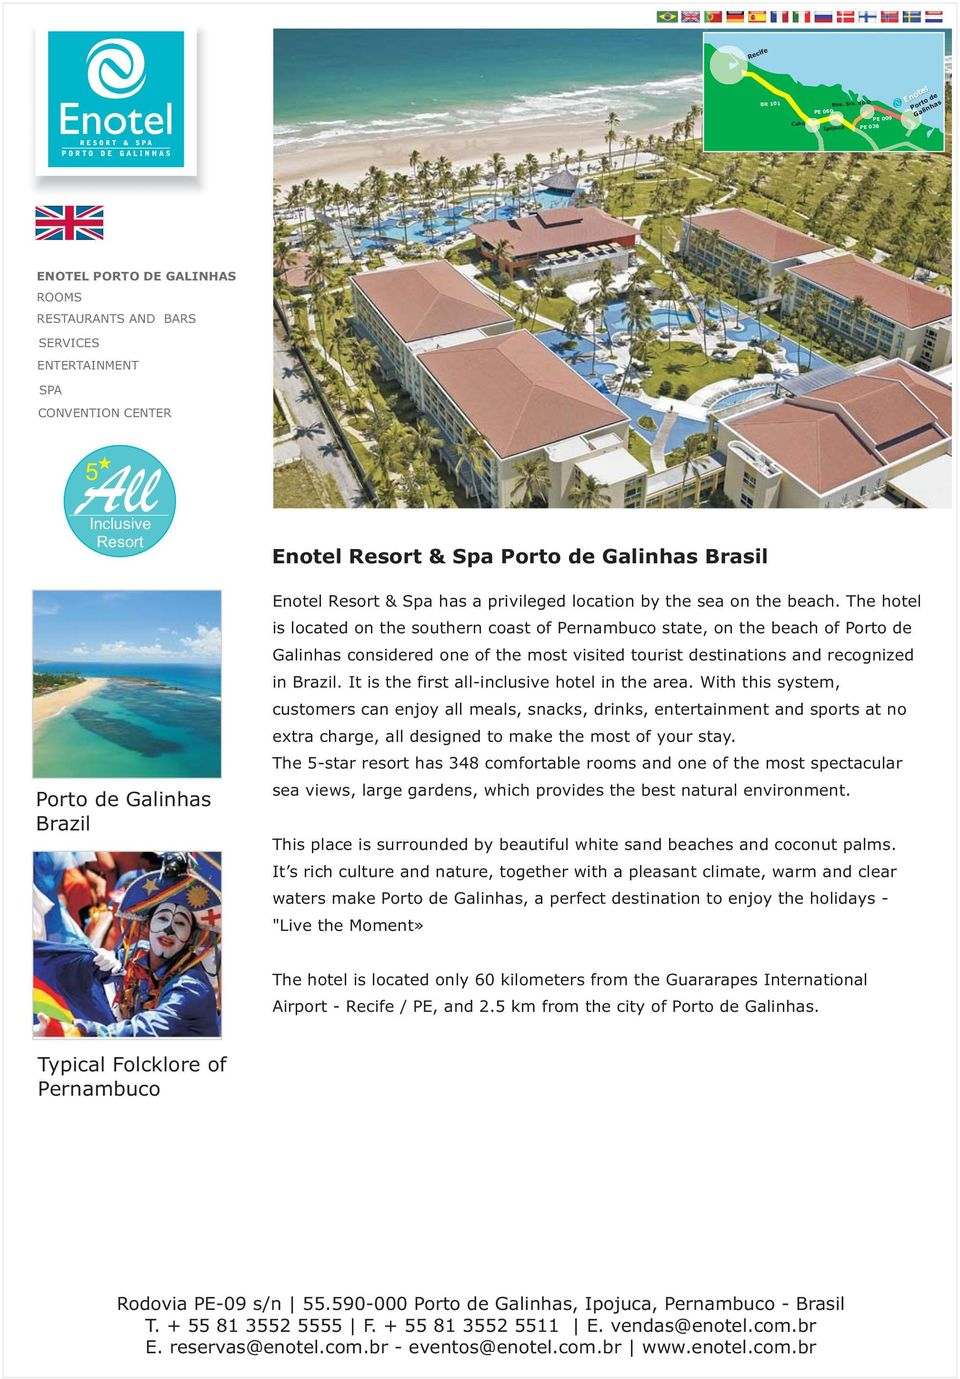 the beach. The hotel is located on the southern coast of Pernambuco state, on the beach of Porto de Galinhas considered one of the most visited tourist destinations and recognized in Brazil.